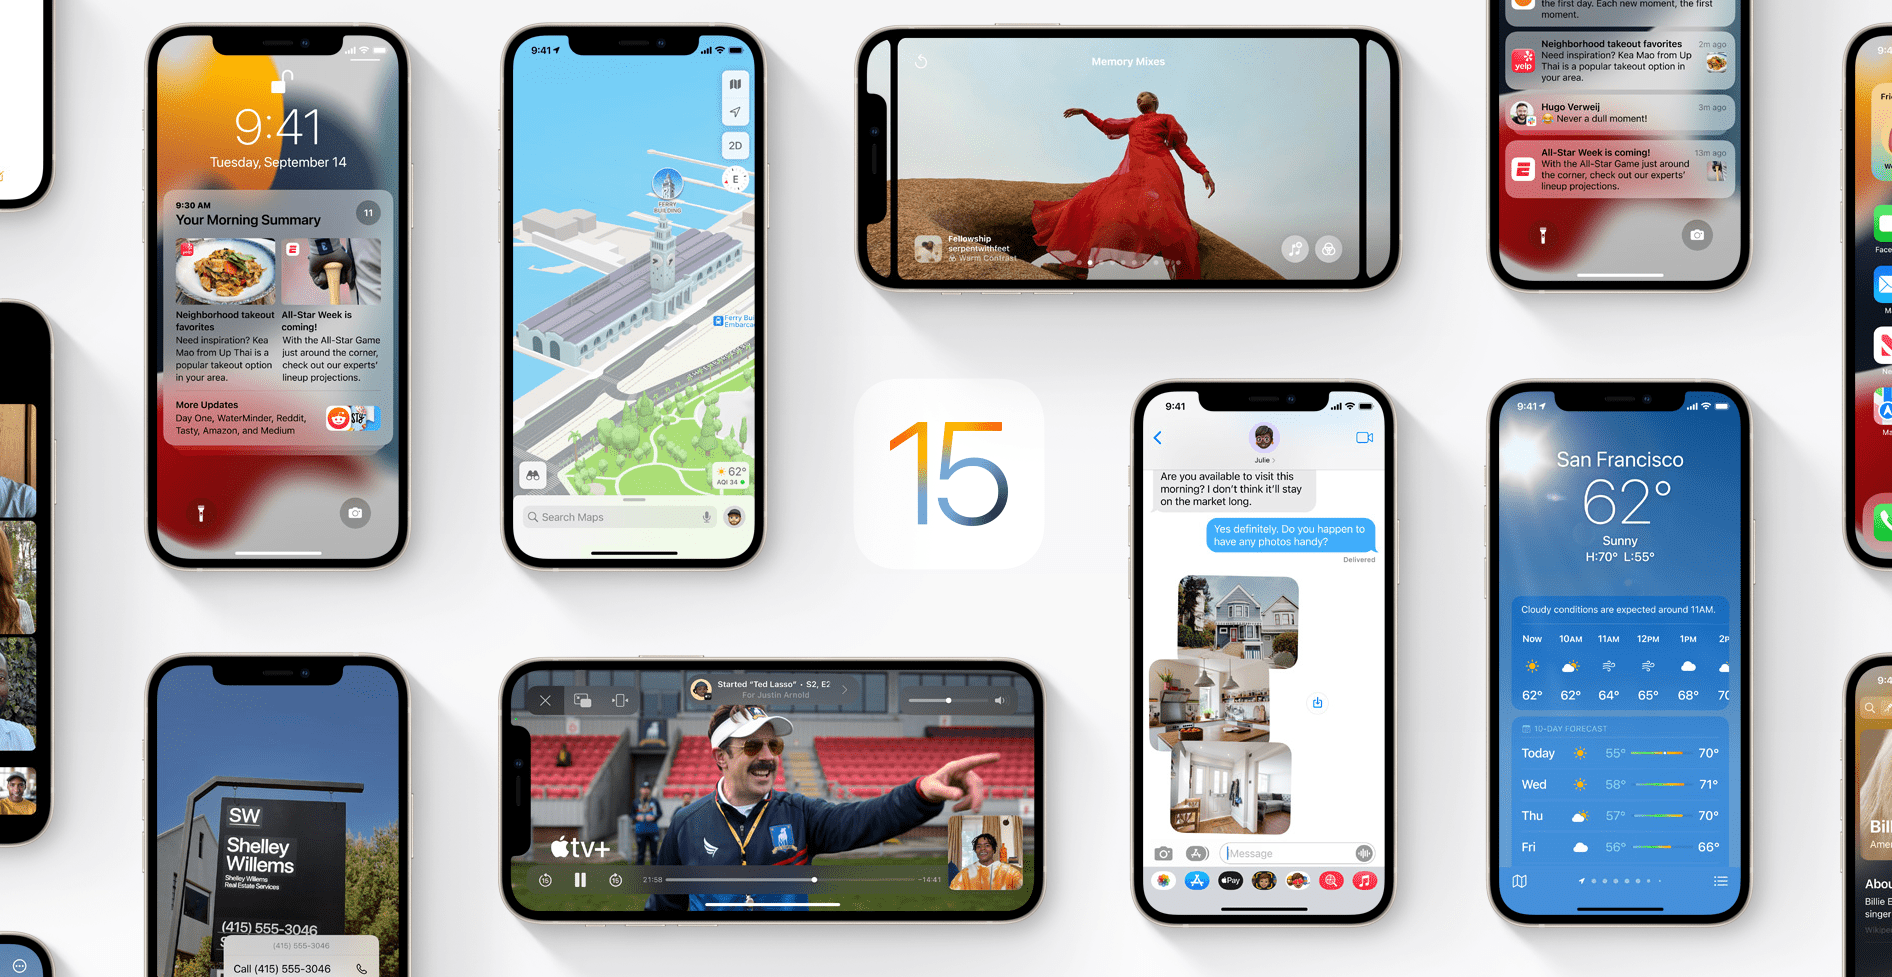 When is the iOS 15 and iPadOS 15 release date?